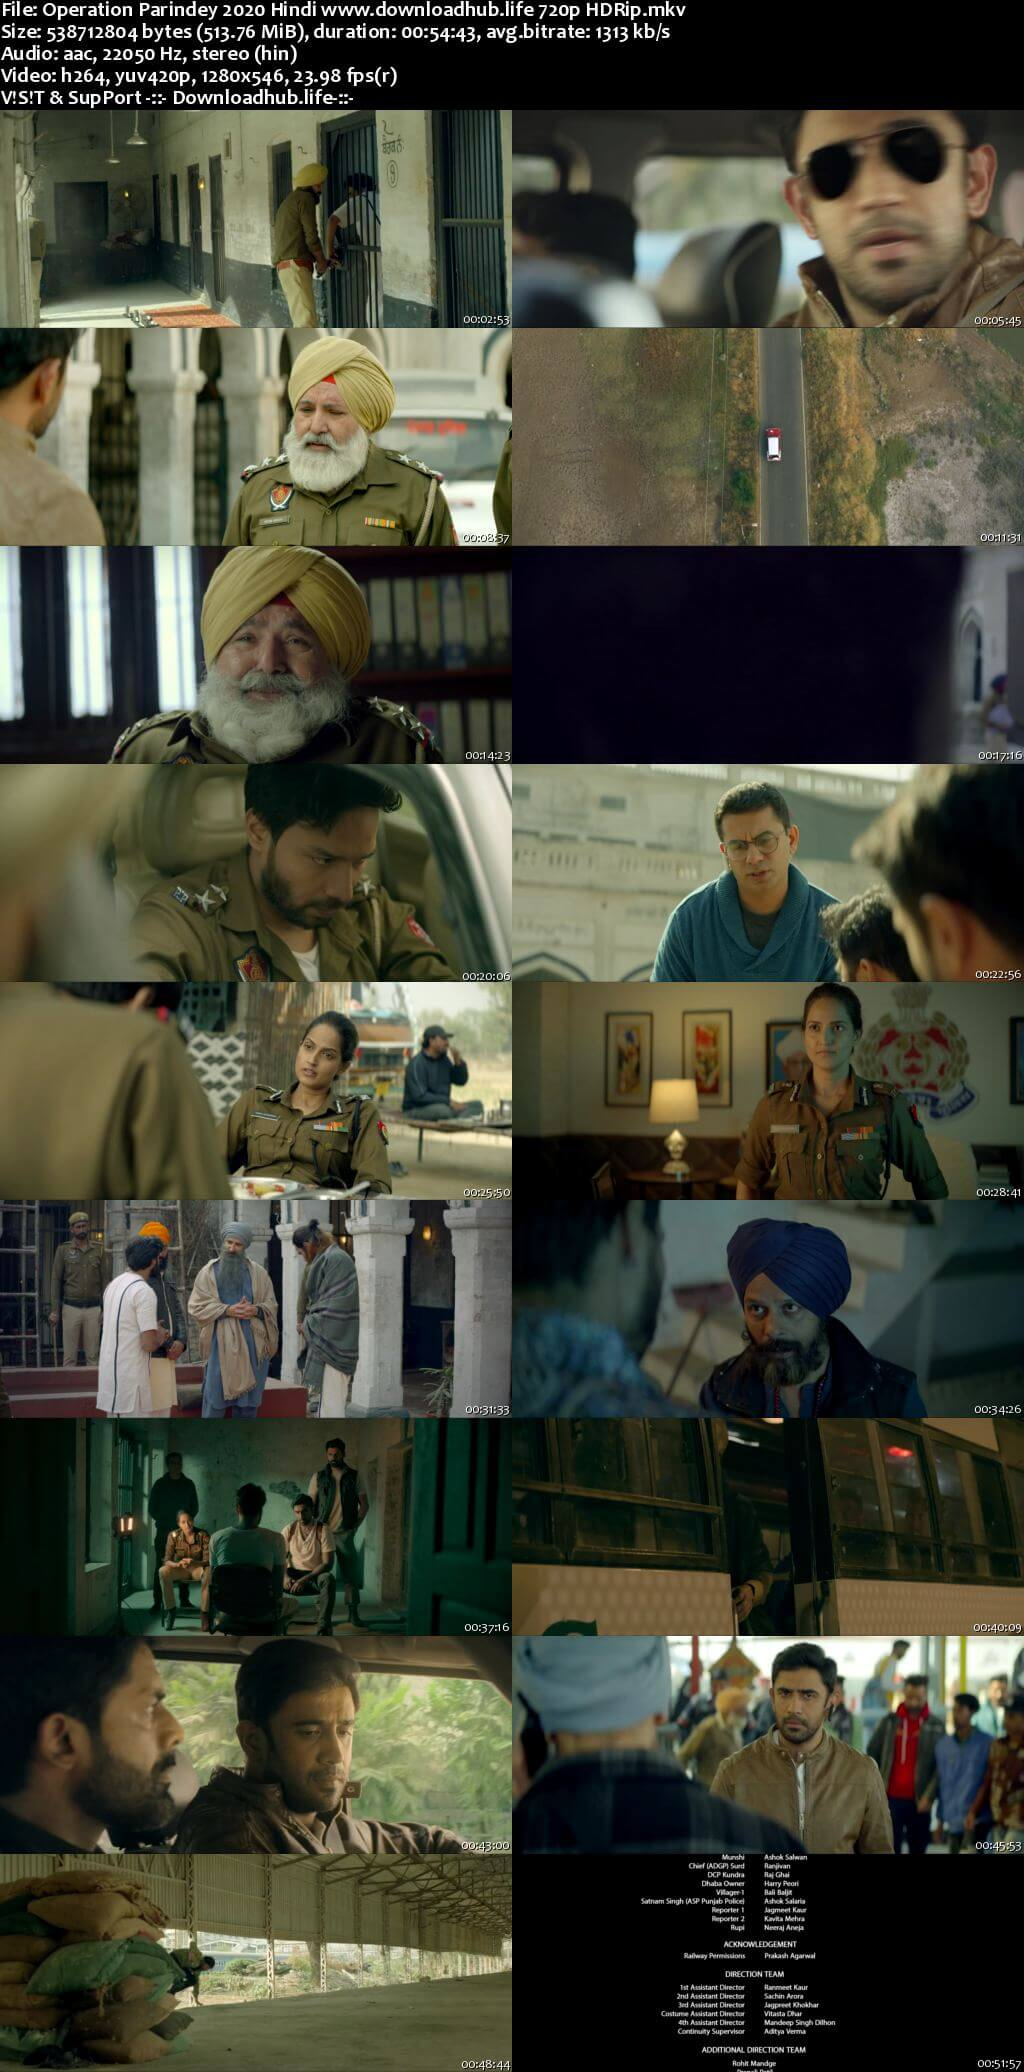 Operation Parindey 2020 Hindi 720p HDRip x264